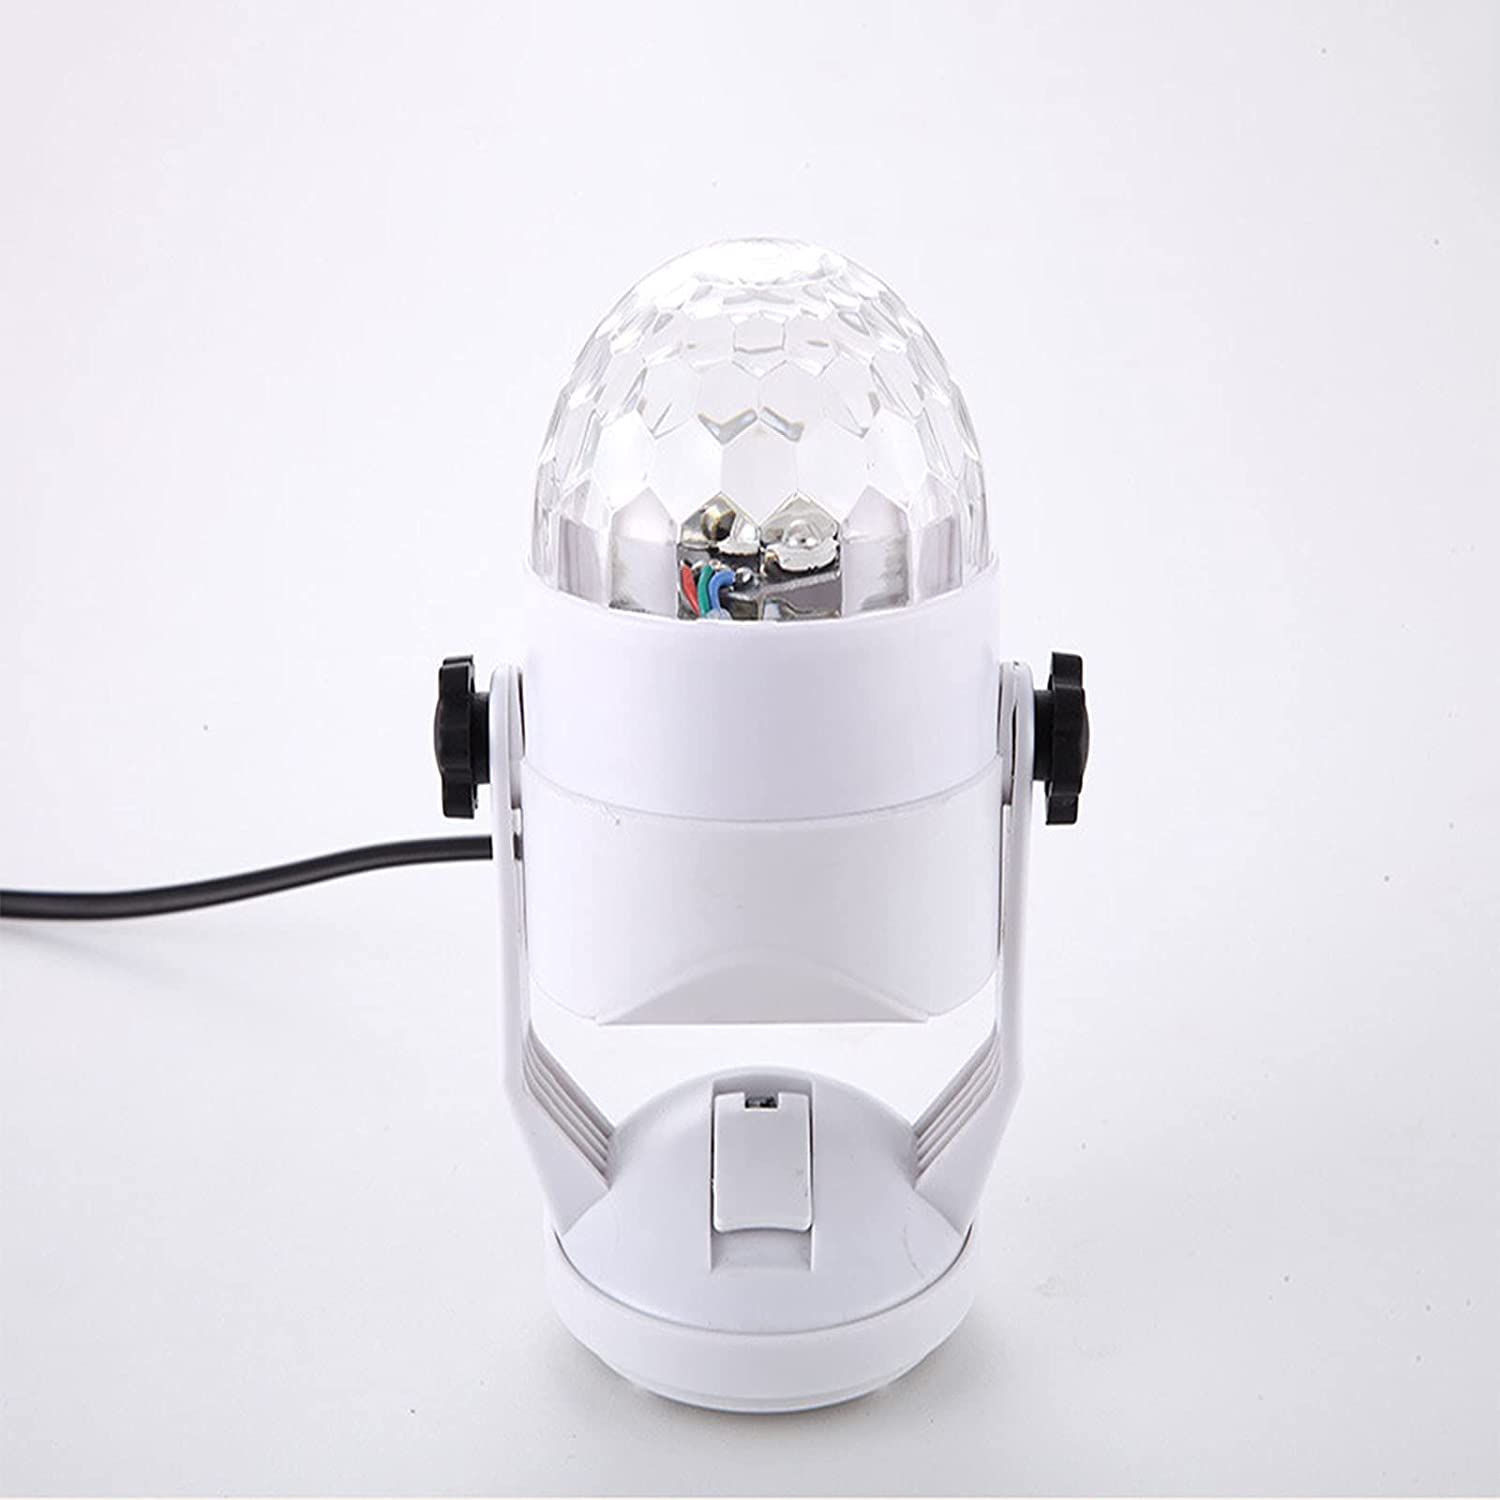 JHGF LED Stage Light Car Projection Regular store Suction with The L Cup Finally popular brand